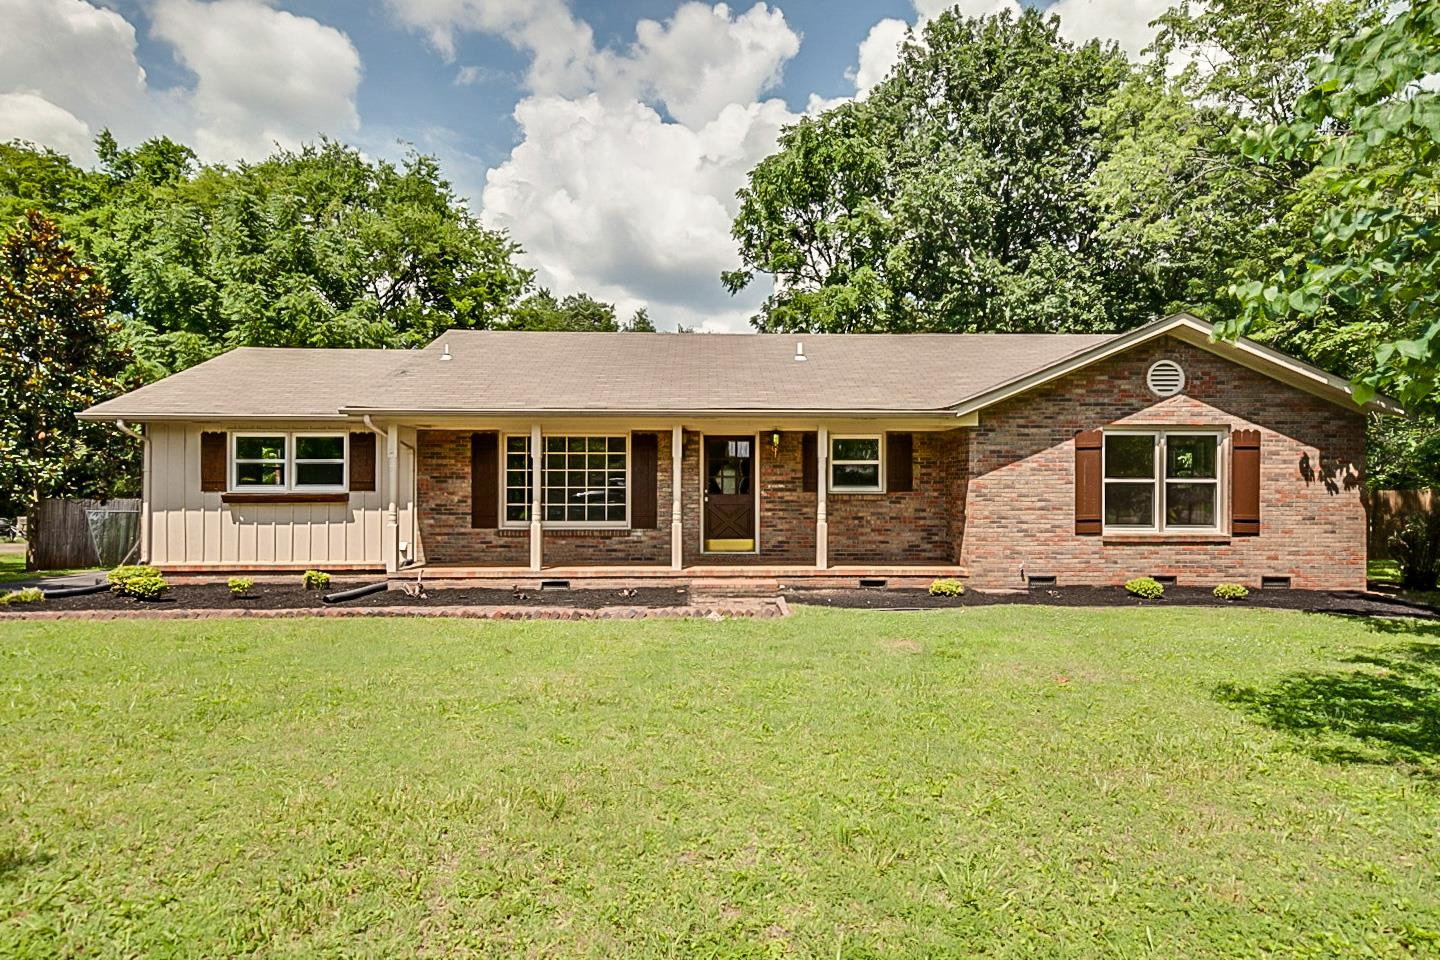 2218 Oakhaven Dr 37129 - One of Murfreesboro Homes for Sale